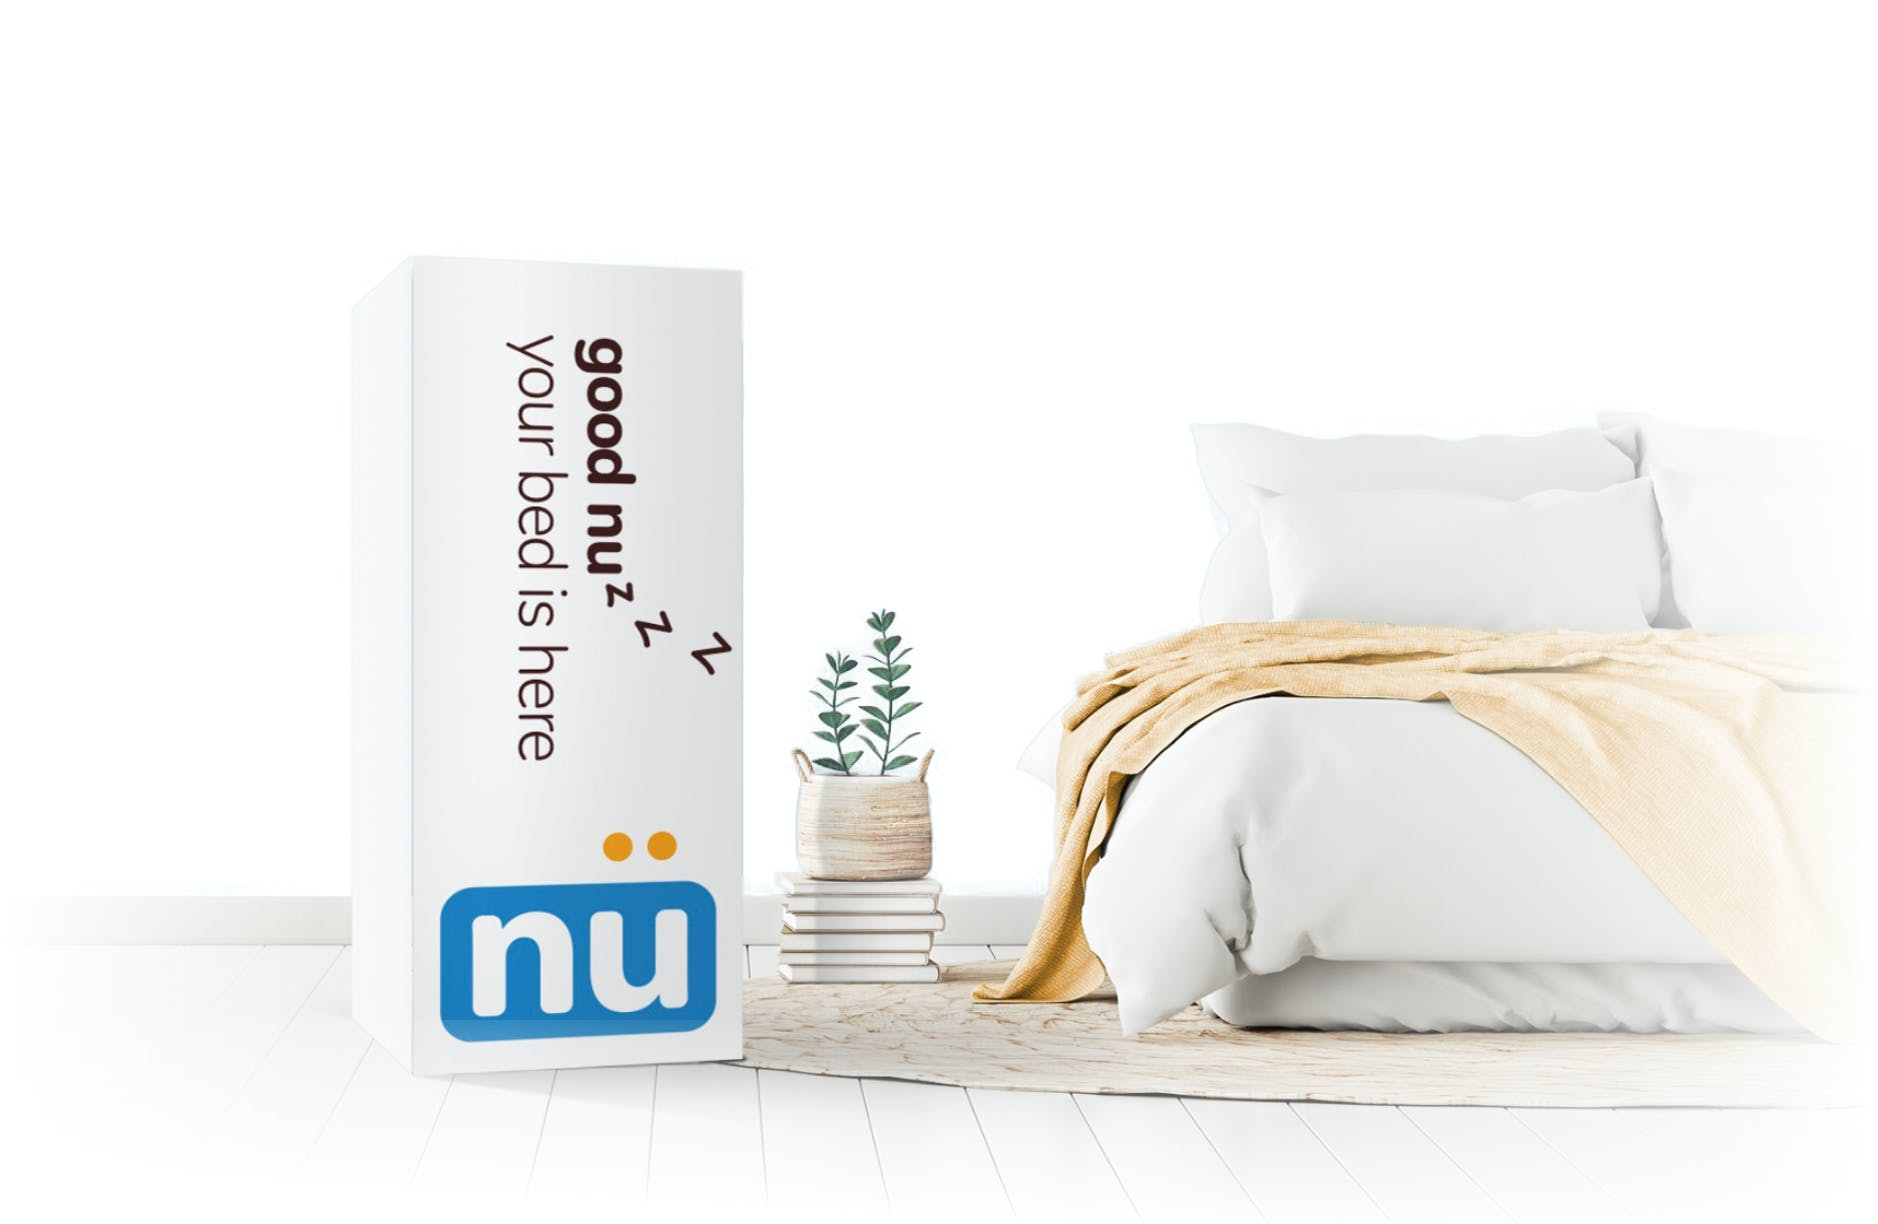 Waterloo Mattress project image showing the Nu mattress box design next to a bed